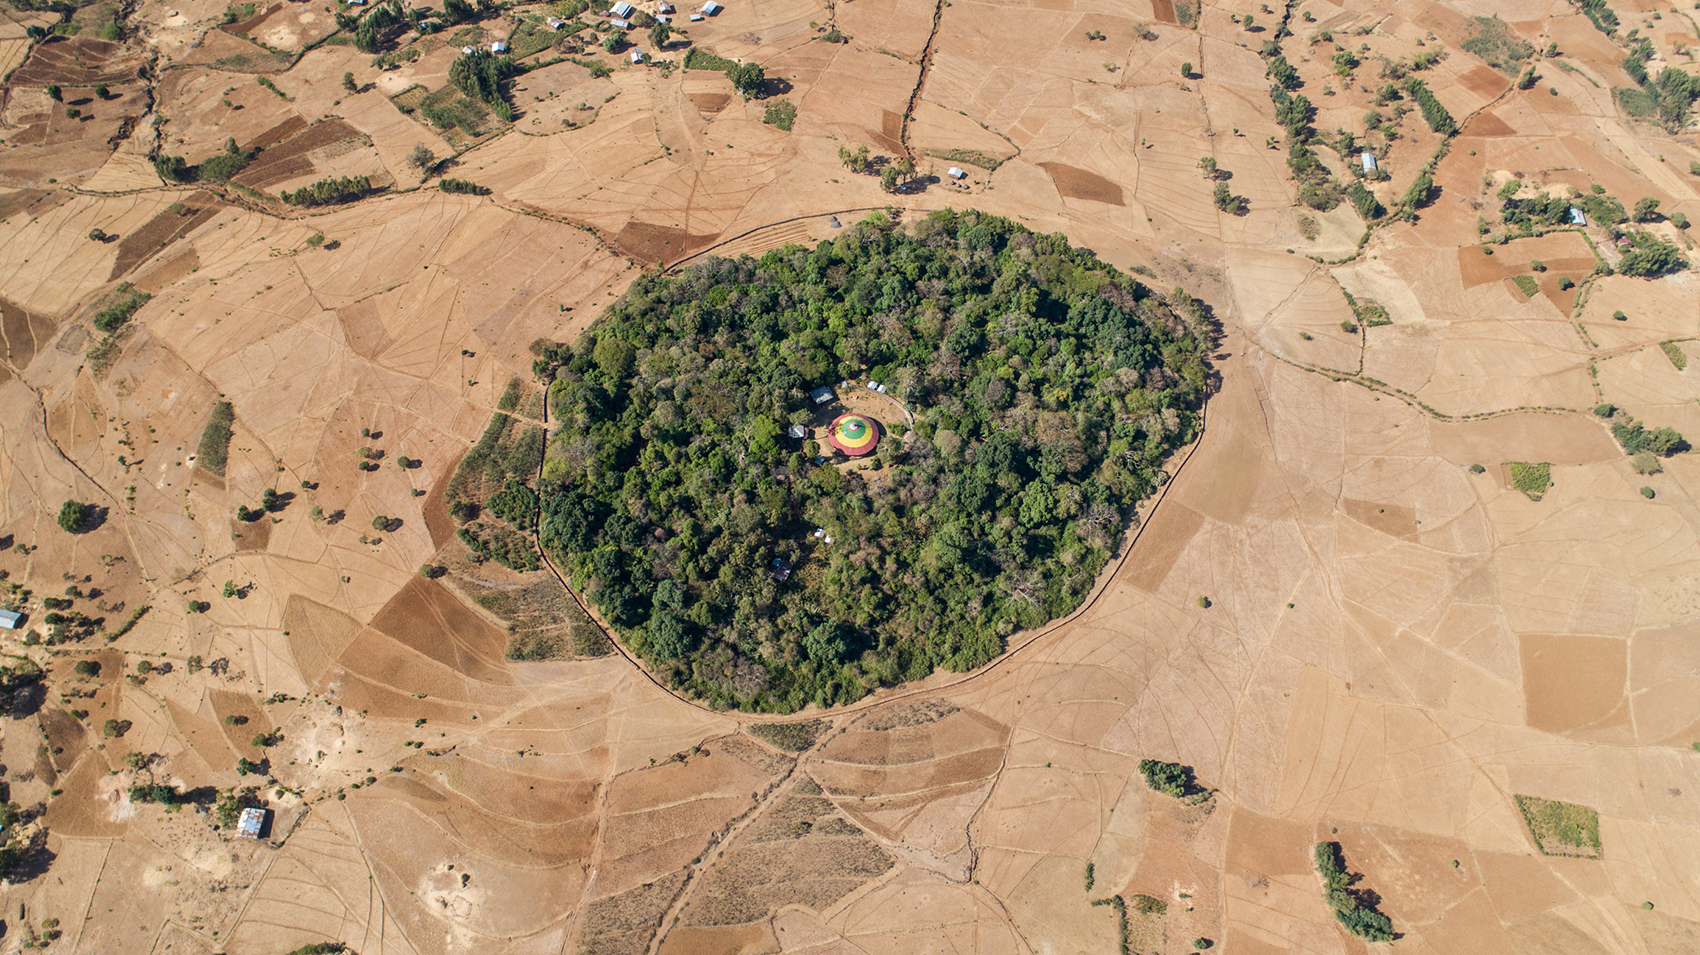 The Church Forests of Ethiopia